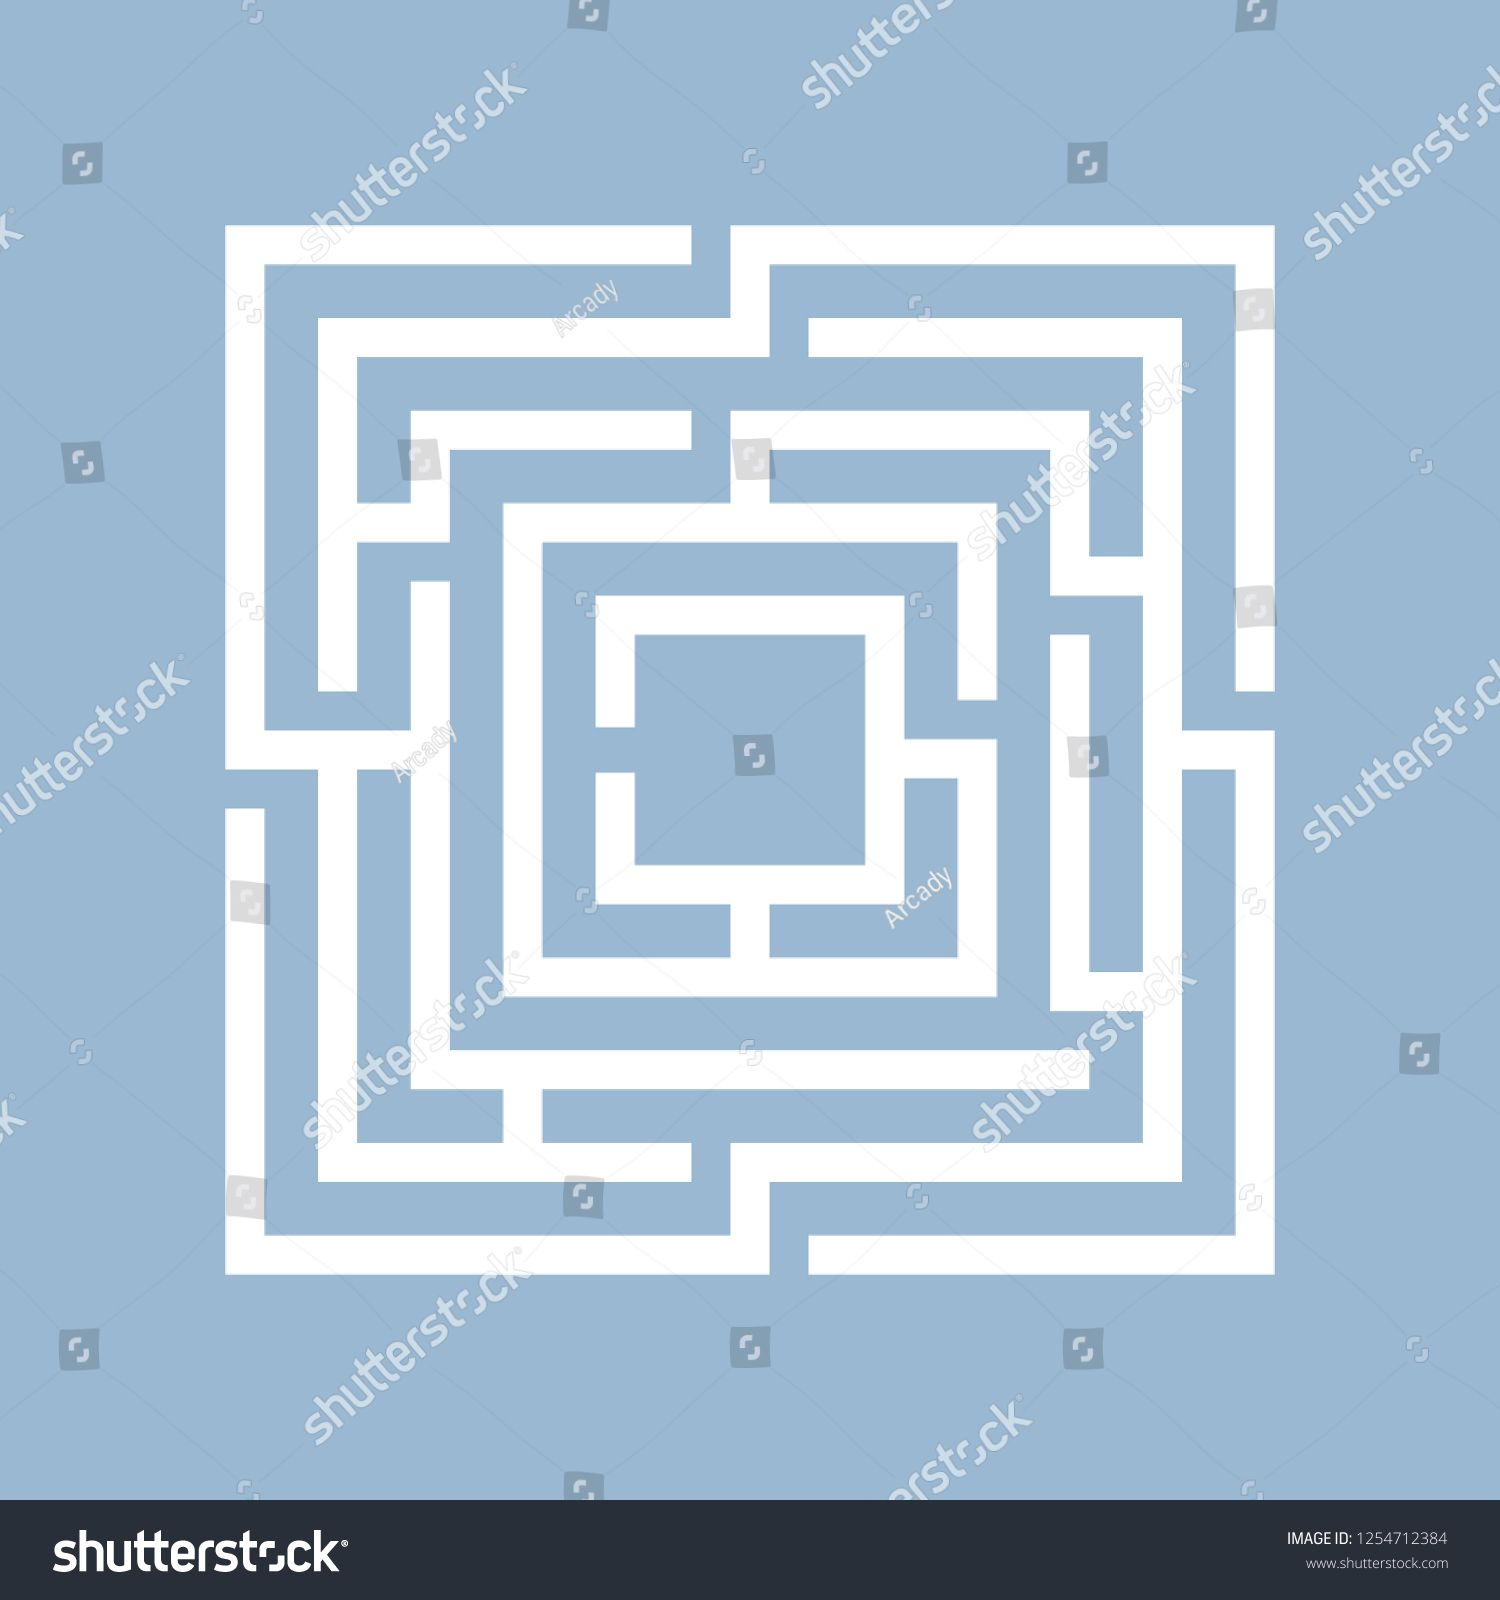 Square maze labyrinth vector illustration isolated on blue